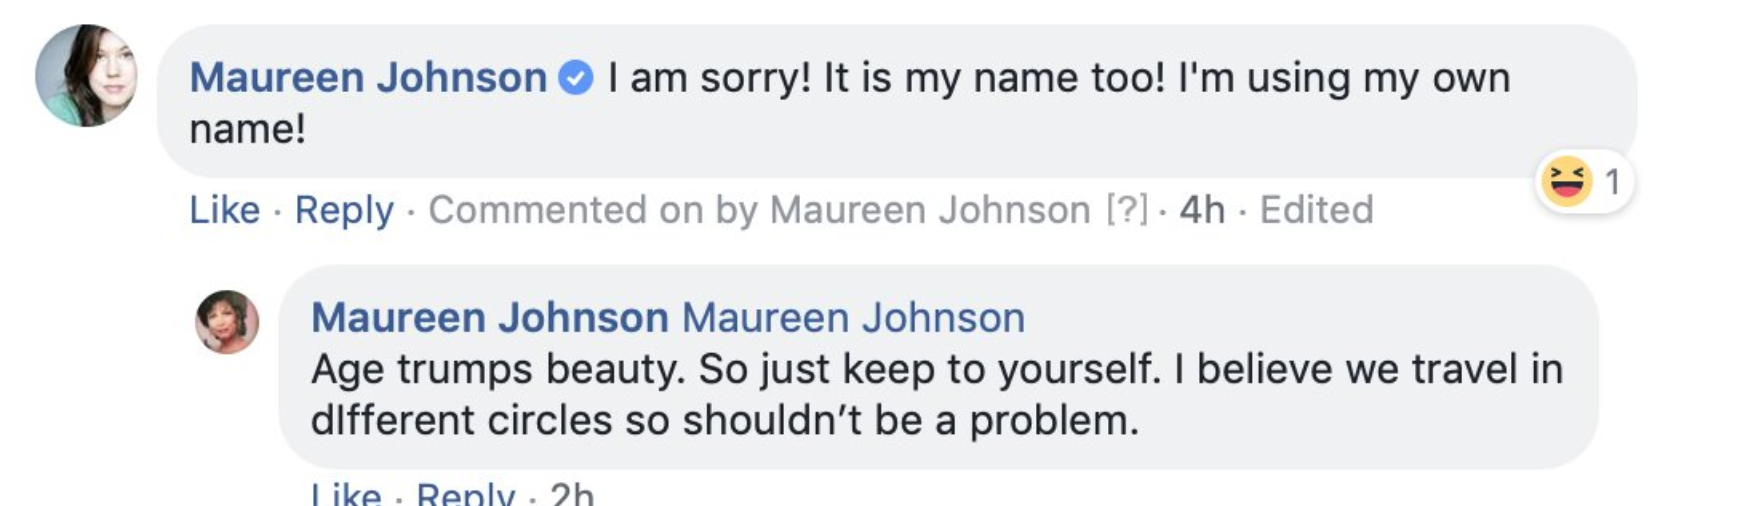 maureen-johnson2-1542384187774-1542384190692.png